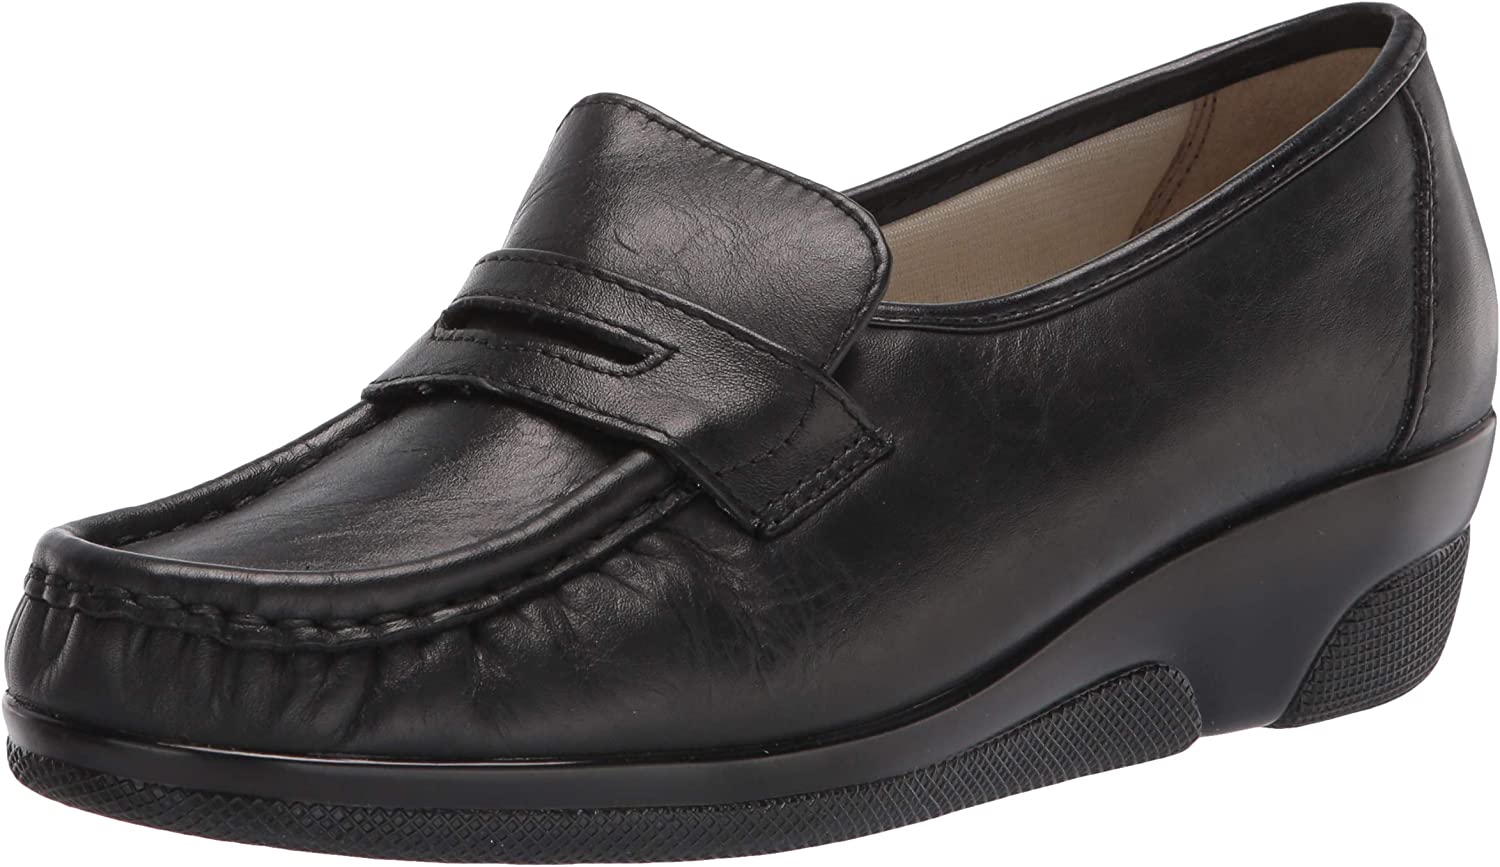 softspots Women's Moccasin San Limited time cheap sale Francisco Mall